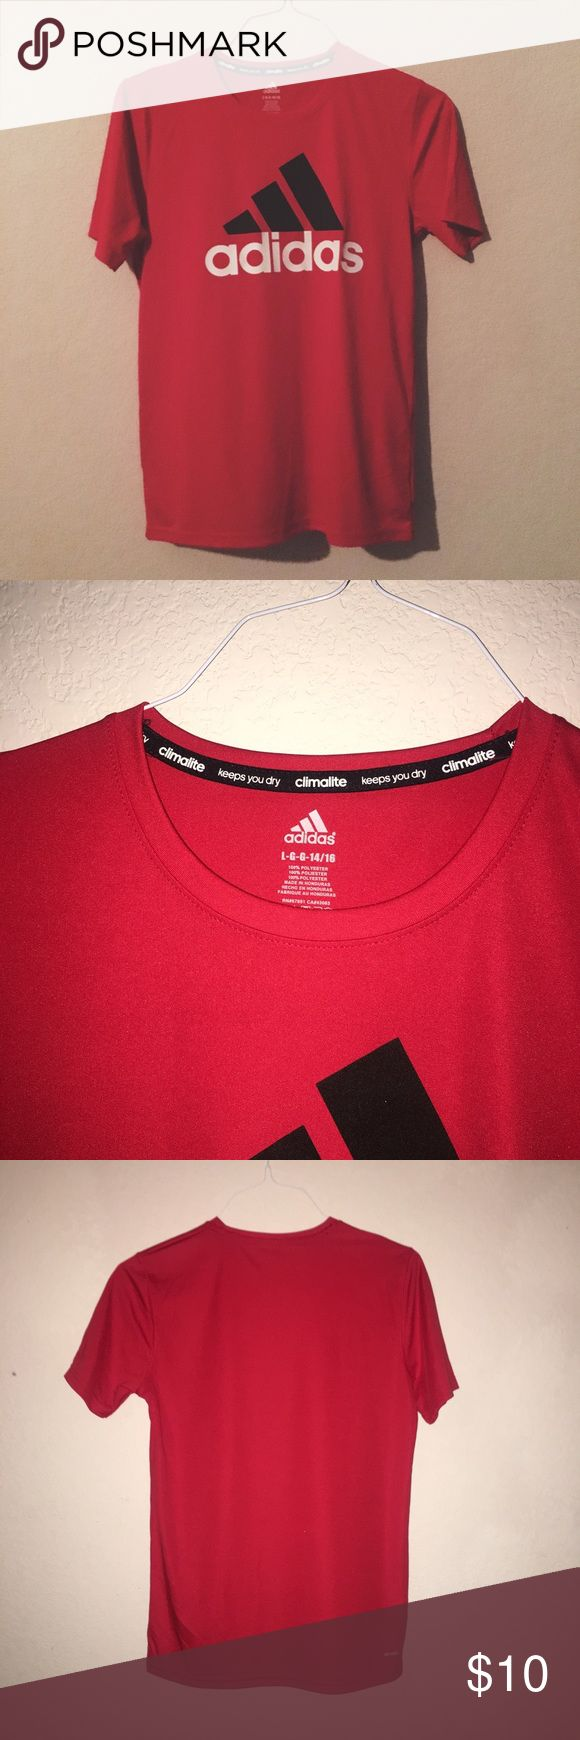 Adidas Workout Shirt Youth L, fits like an adult S. Worn once. adidas Shirts & Tops Tees - Short Sleeve